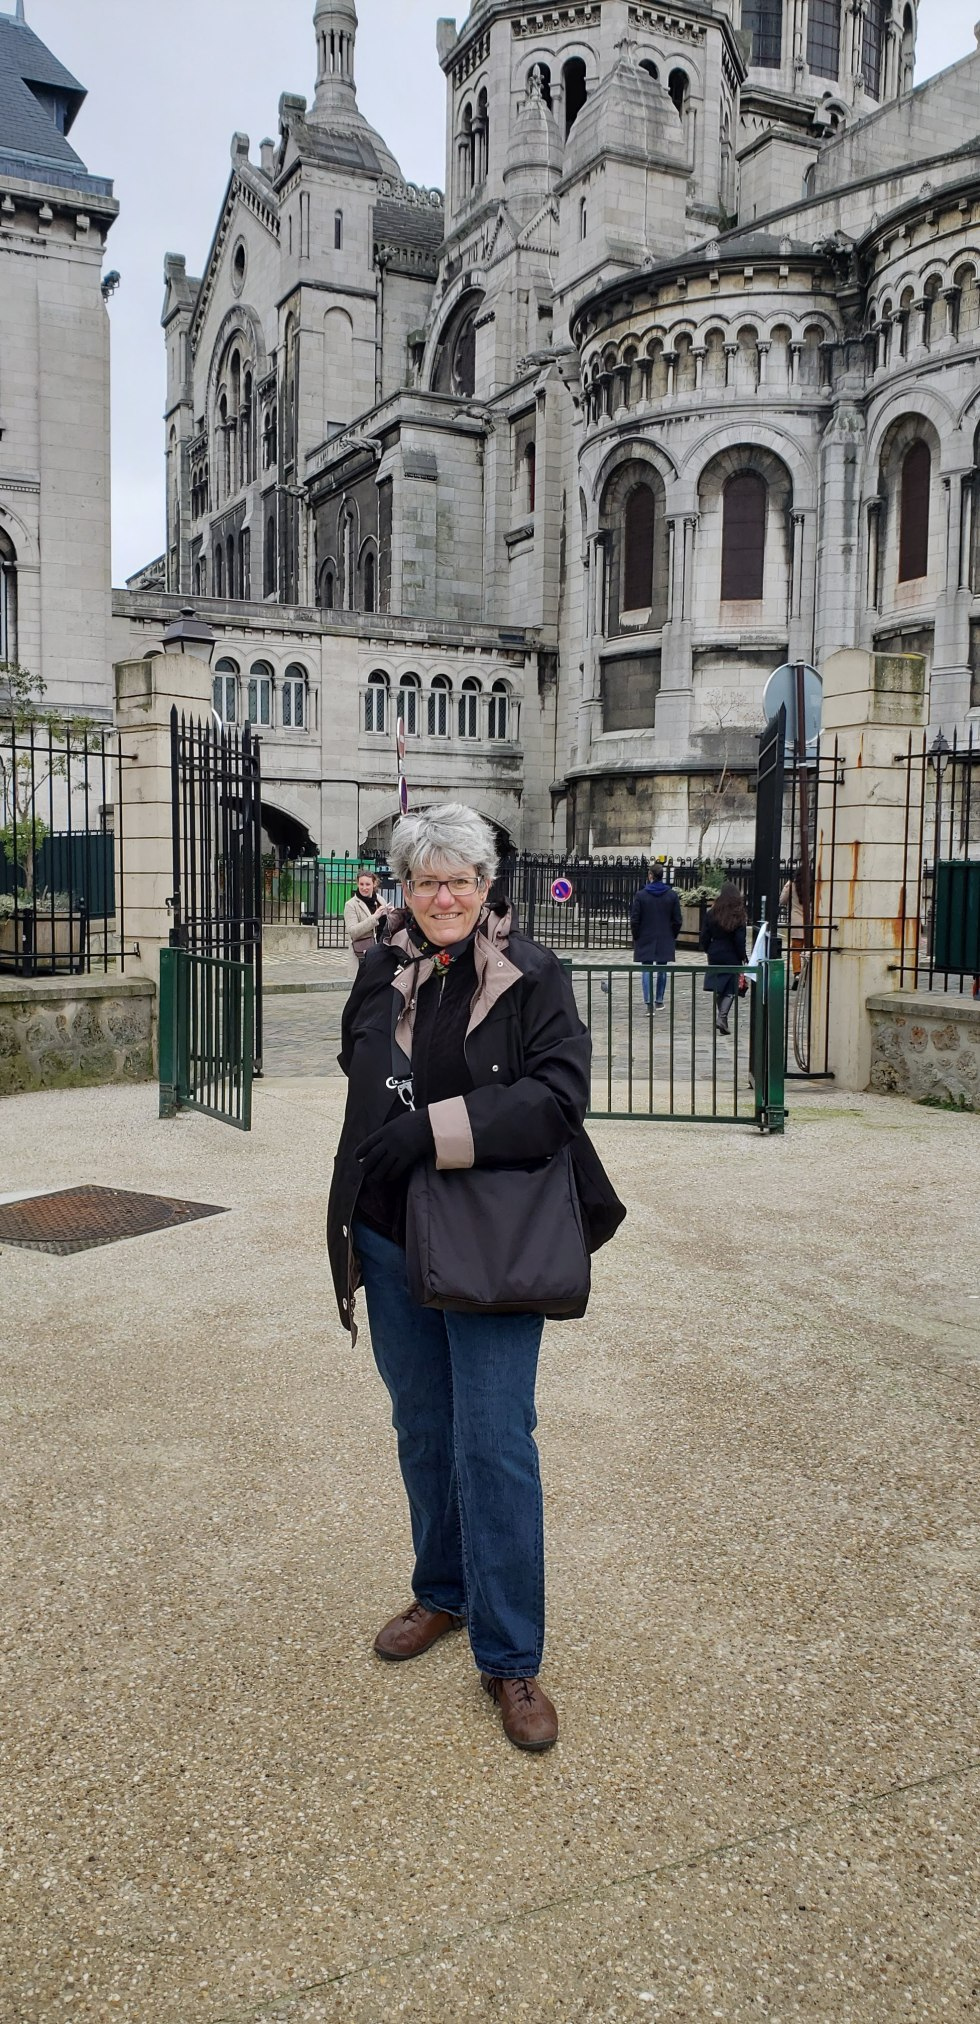 Artist Maura Satchell standing in front of the gates of the Louvre